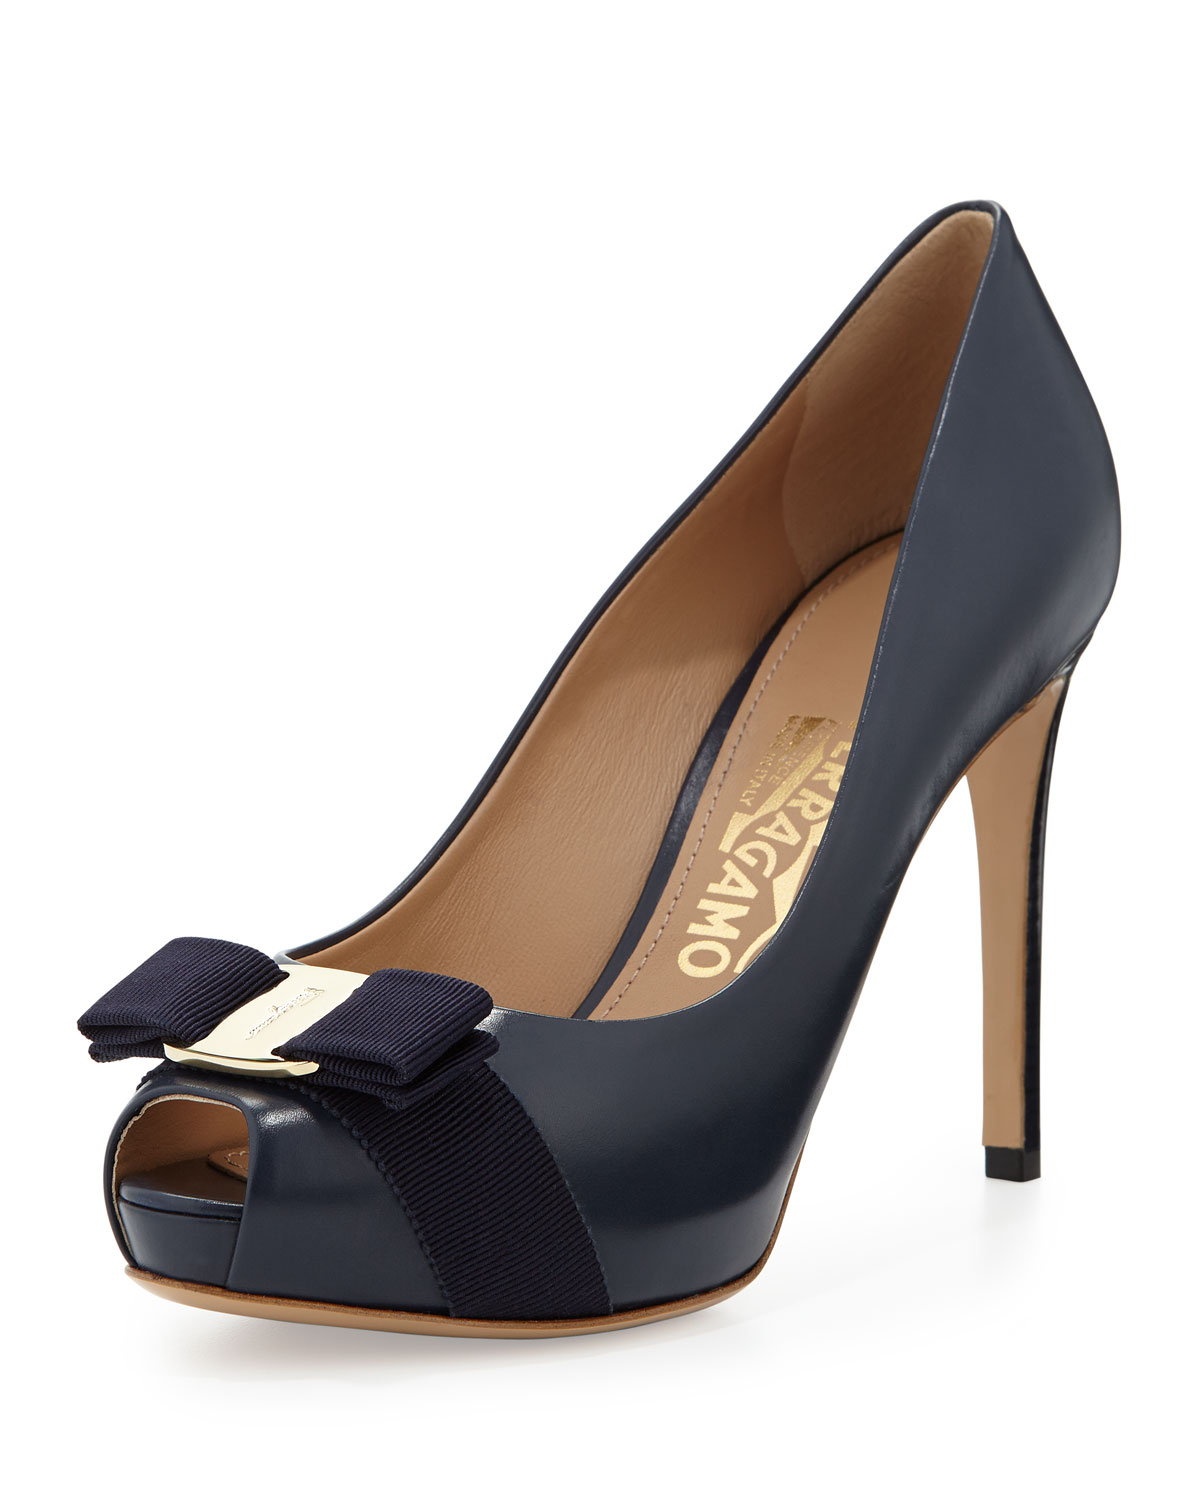 Neiman Marcus Ferragamo Womens Shoes